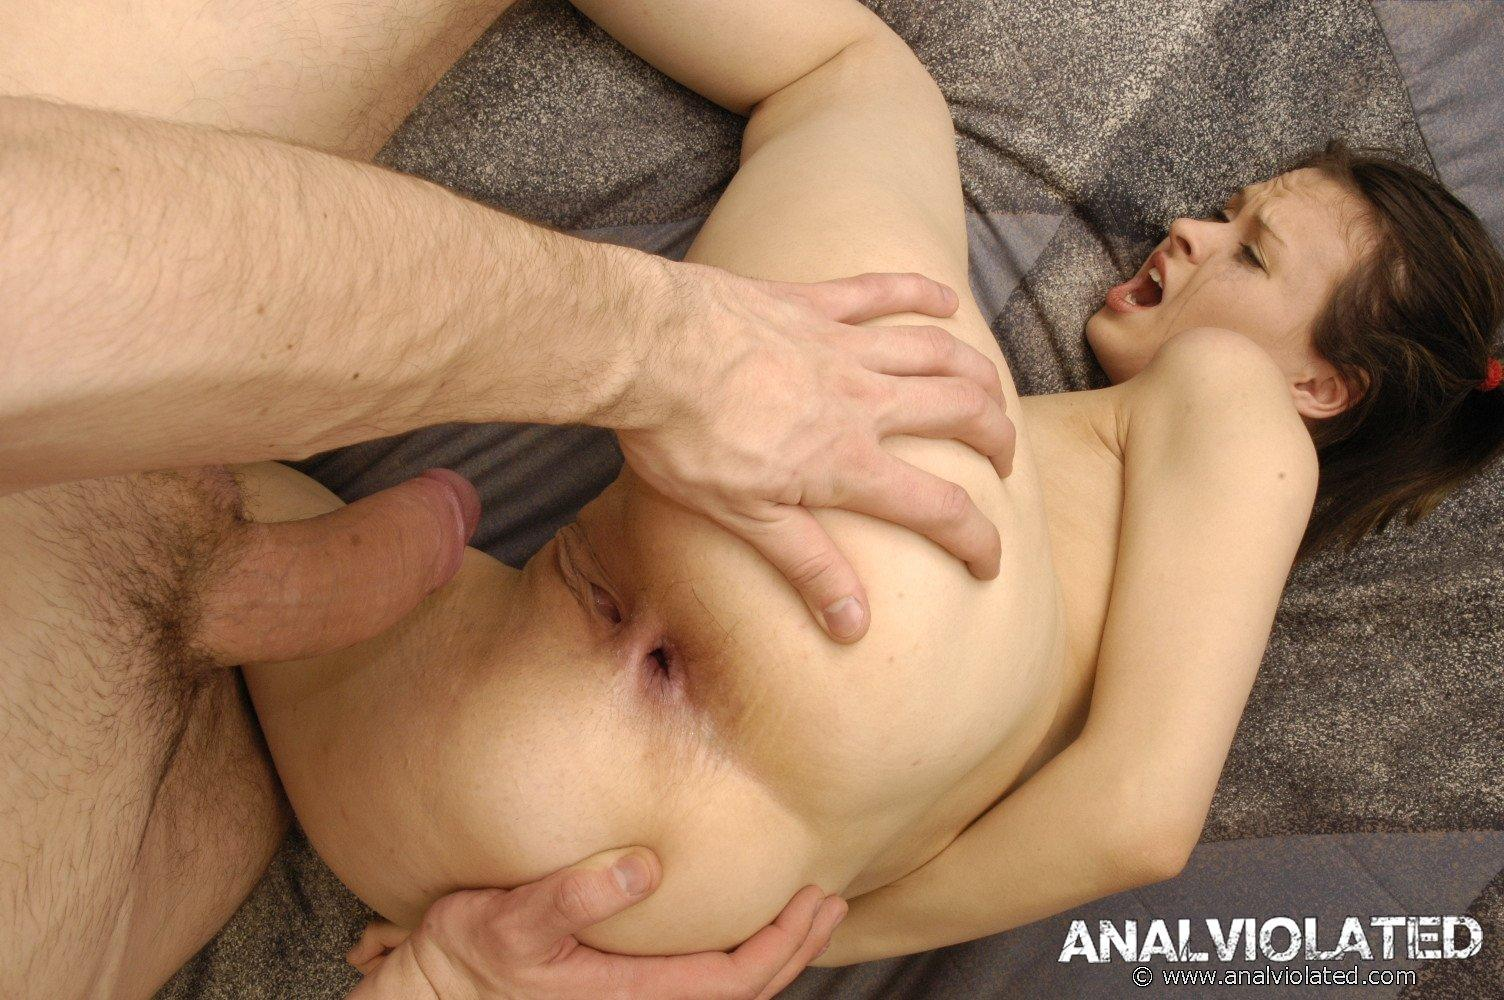 Forced anal sex flat on tummy 1